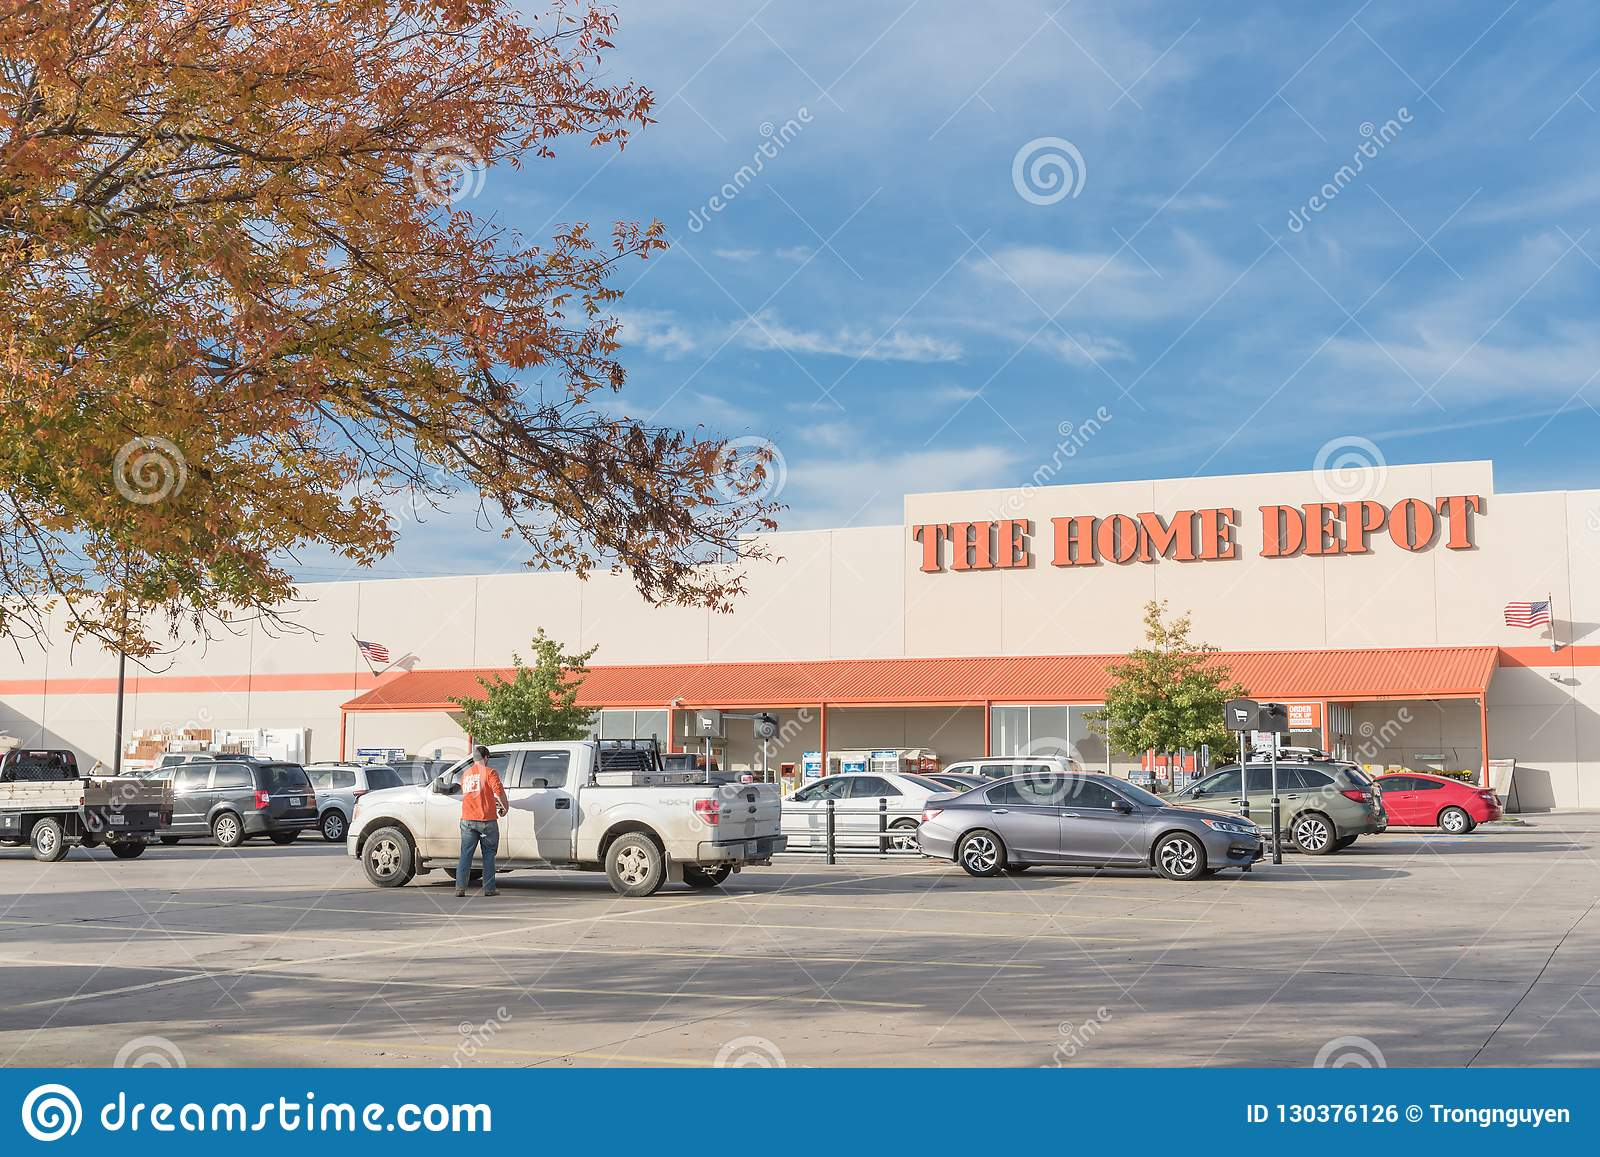 Looking To Home Depot Entrance From Parking Lots With Colorful A